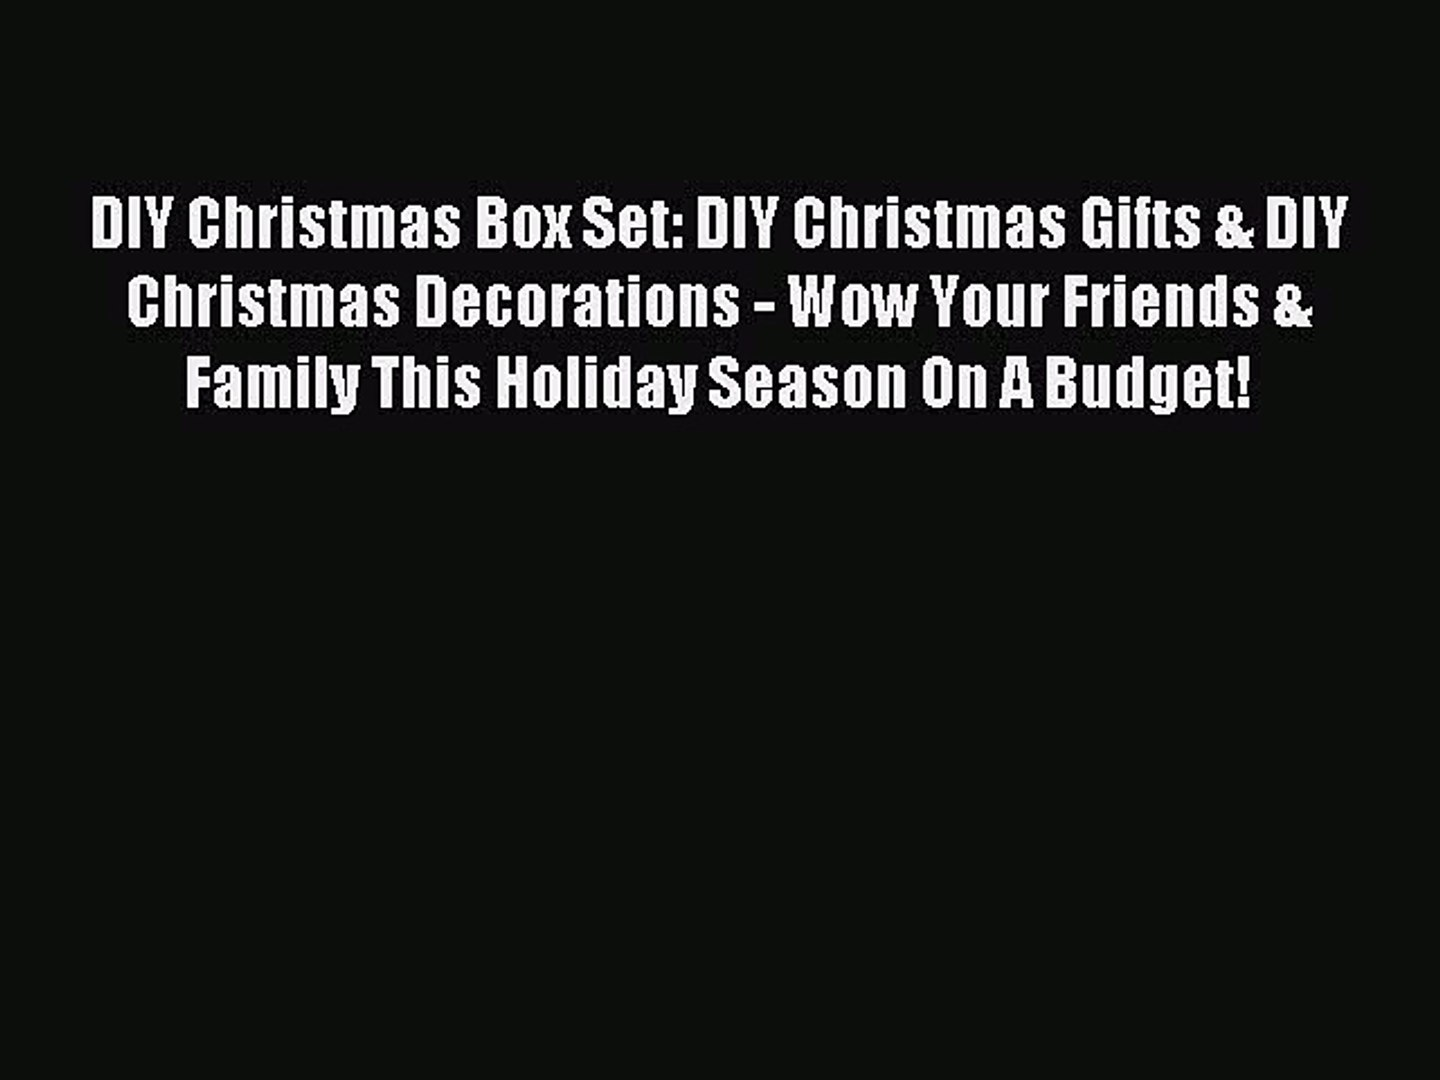 Download DIY Christmas Box Set: DIY Christmas Gifts & DIY Christmas Decorations - Wow Your